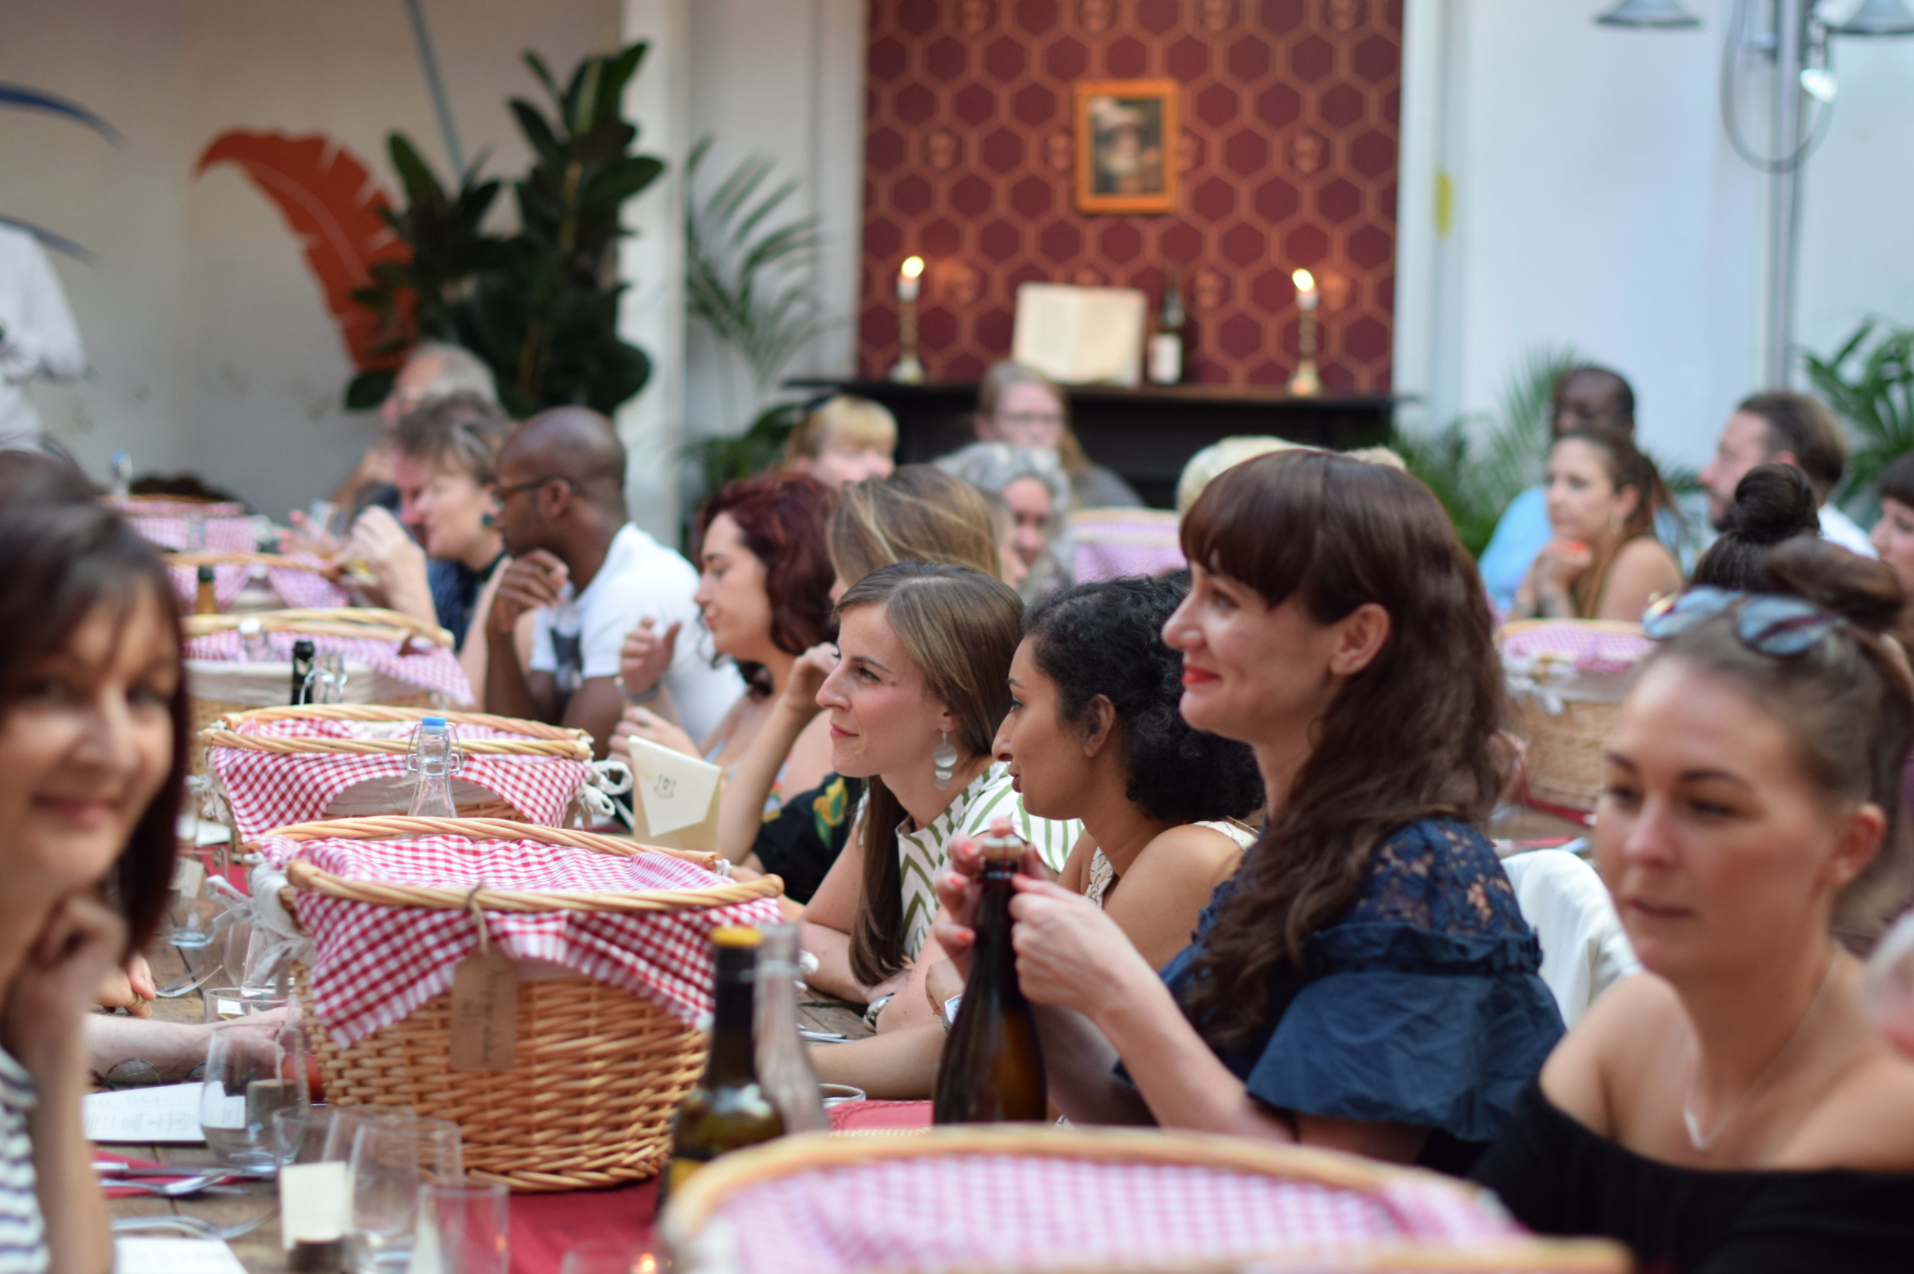 The Literary Hour hosts specially curated dinners inspired by famous books.